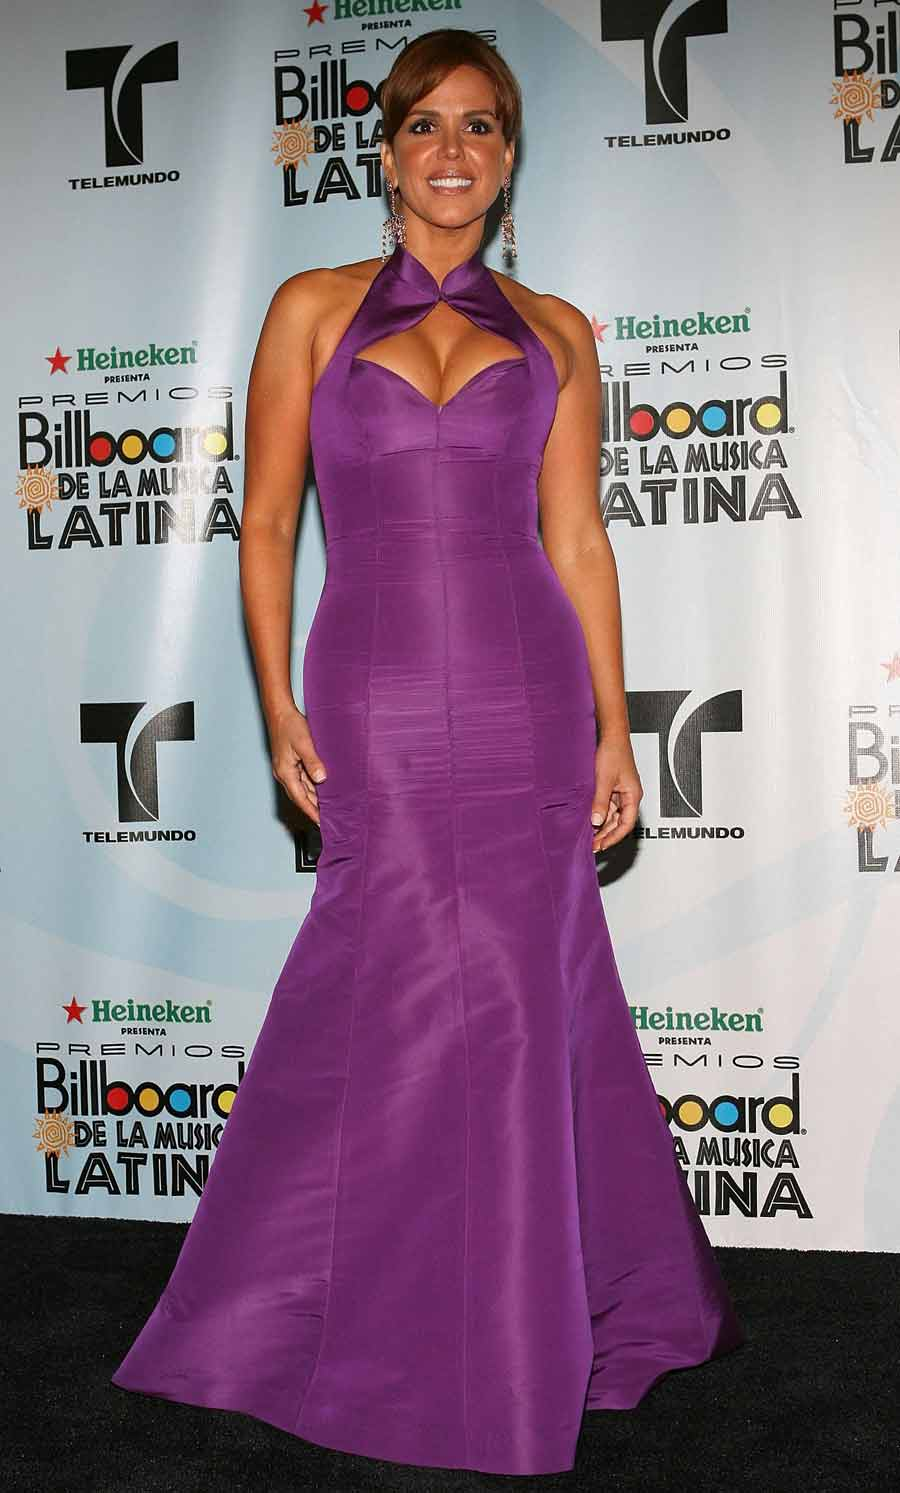 2006 Billboard Latin Music Awards - Press Room